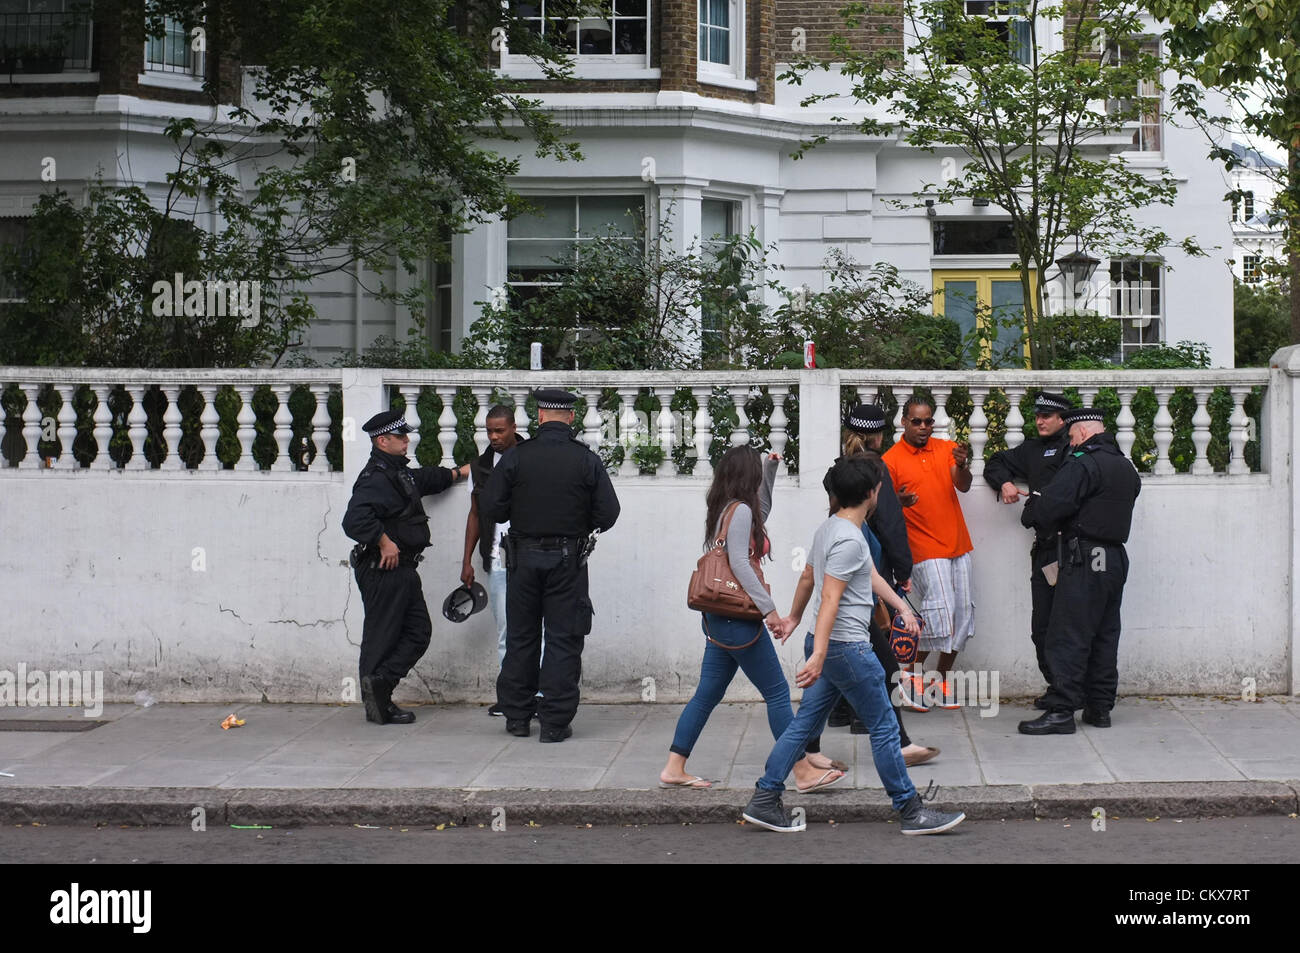 26th Aug 2012. London, UK.Police questioning men at the Notting HIll Carnival in August 2012 - Stock Image